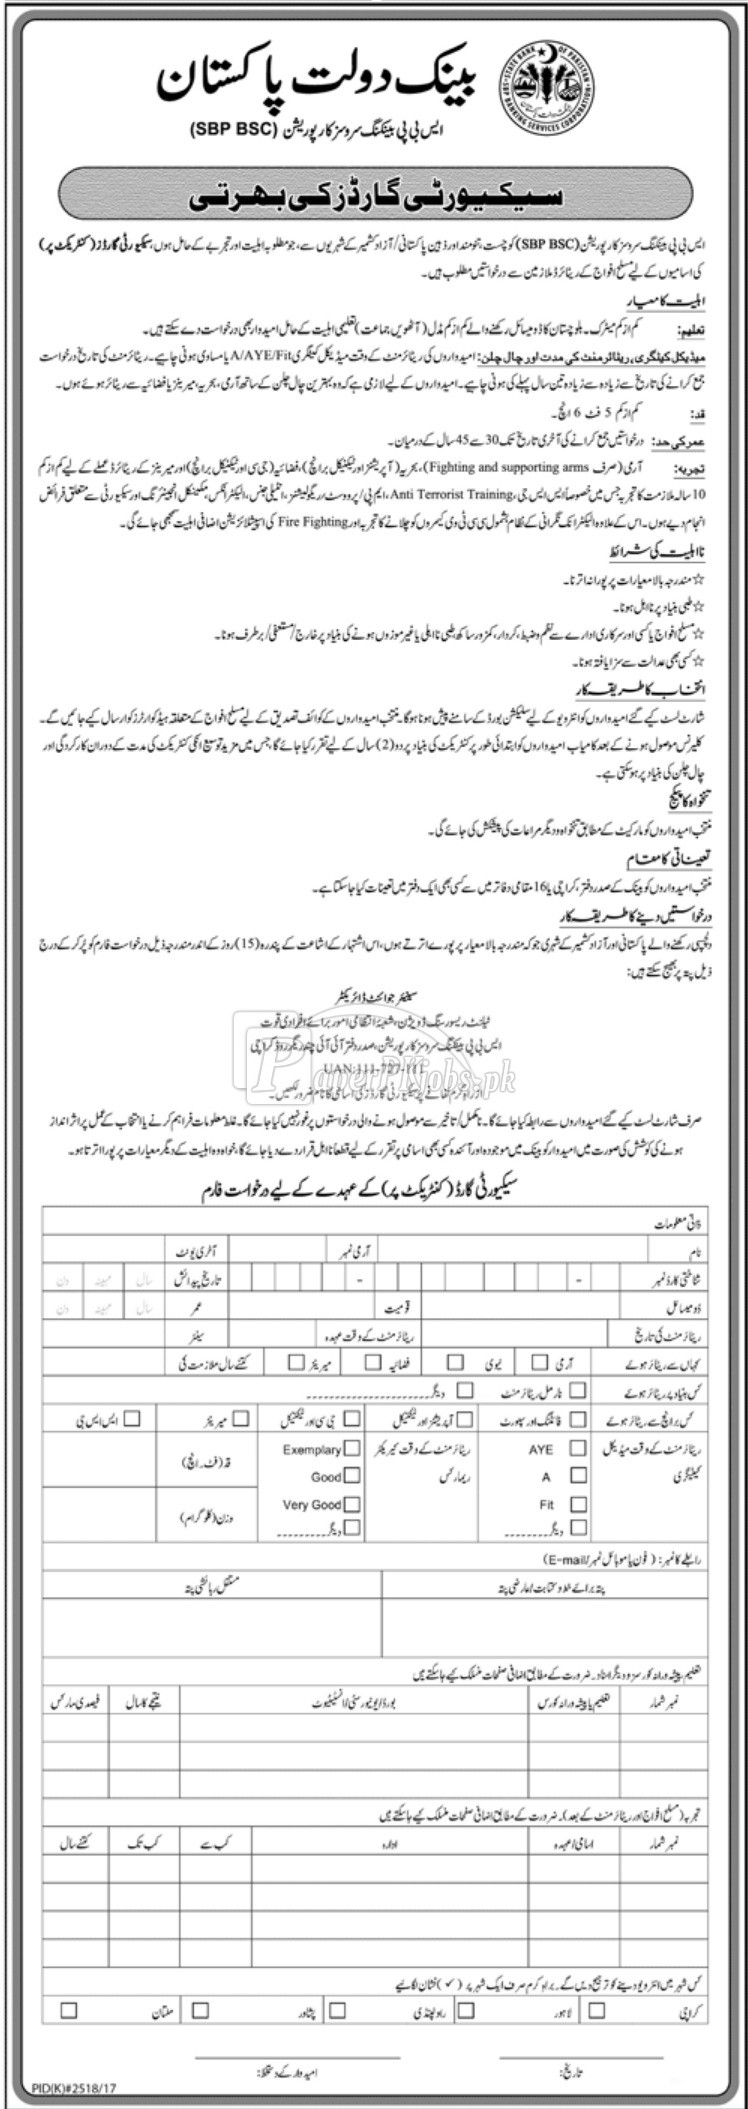 State Bank of Pakistan Banking Services Corporation SBP BSC Jobs 2018